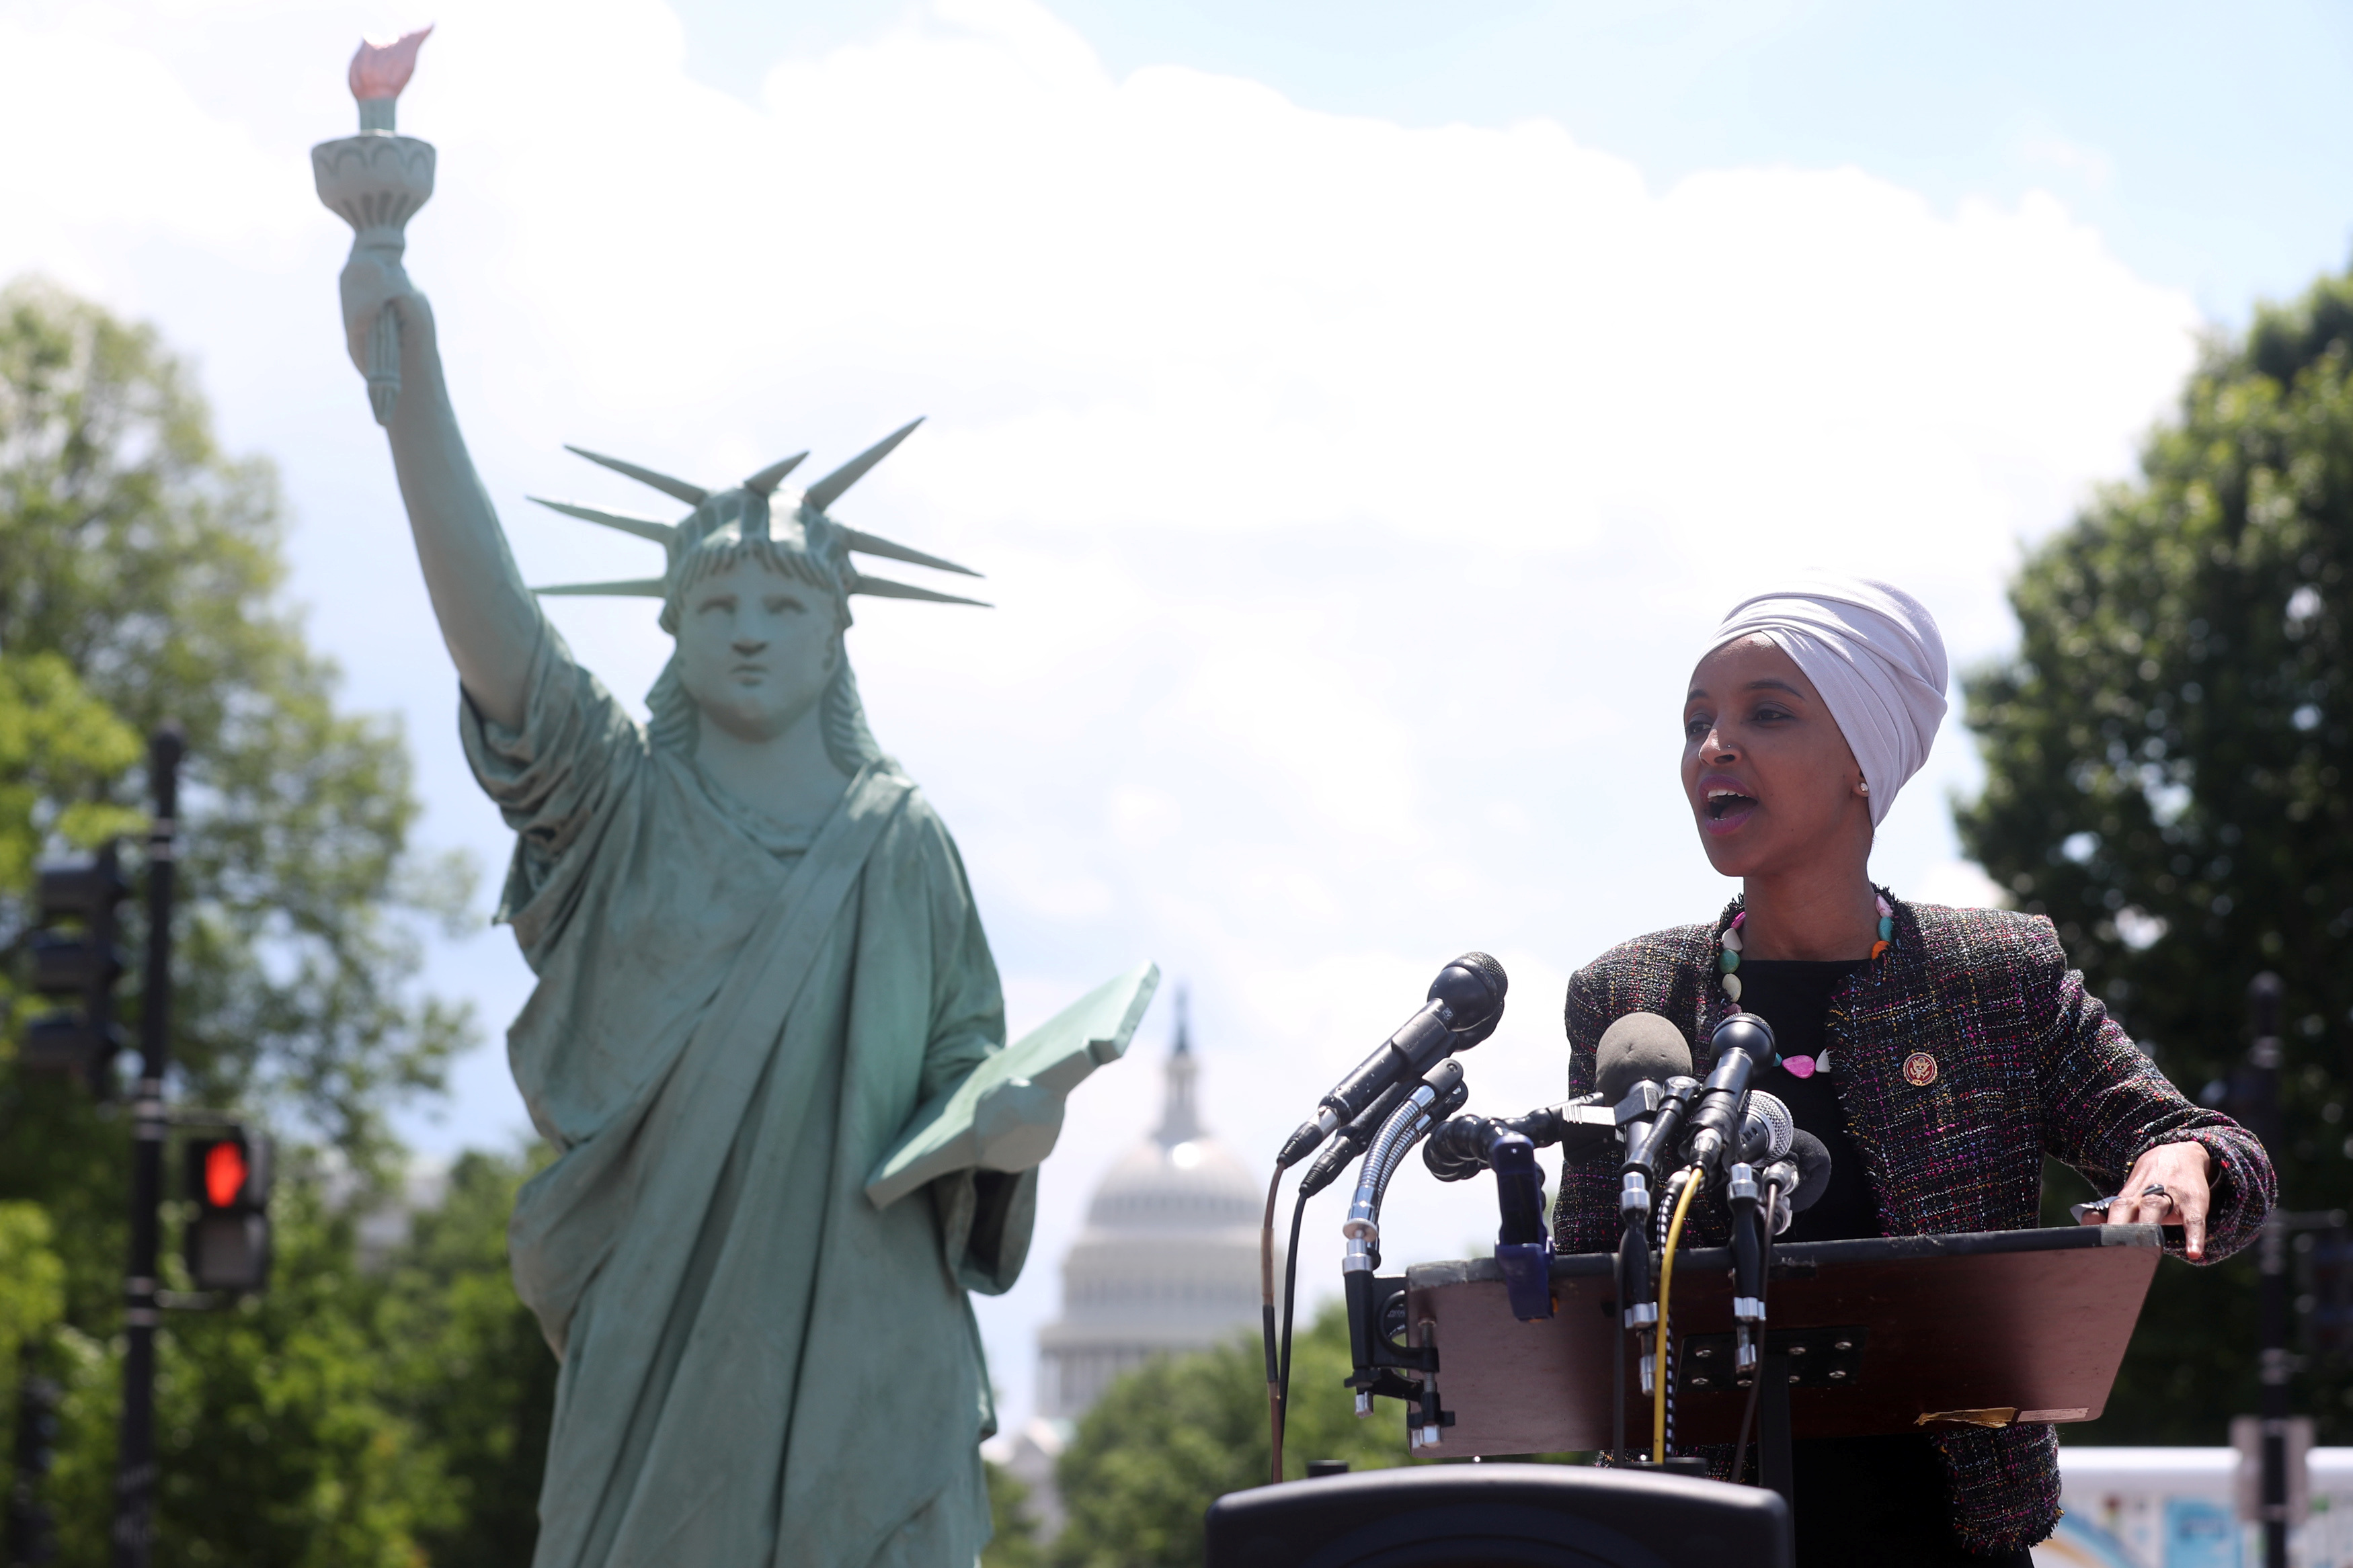 U.S. Representative Ilhan Omar (D-MN) addresses a small rally on immigration rights at the temporary installation of a replica of the Statue of Liberty at Union Station in Washington, U.S. May 16, 2019. REUTERS/Jonathan Ernst